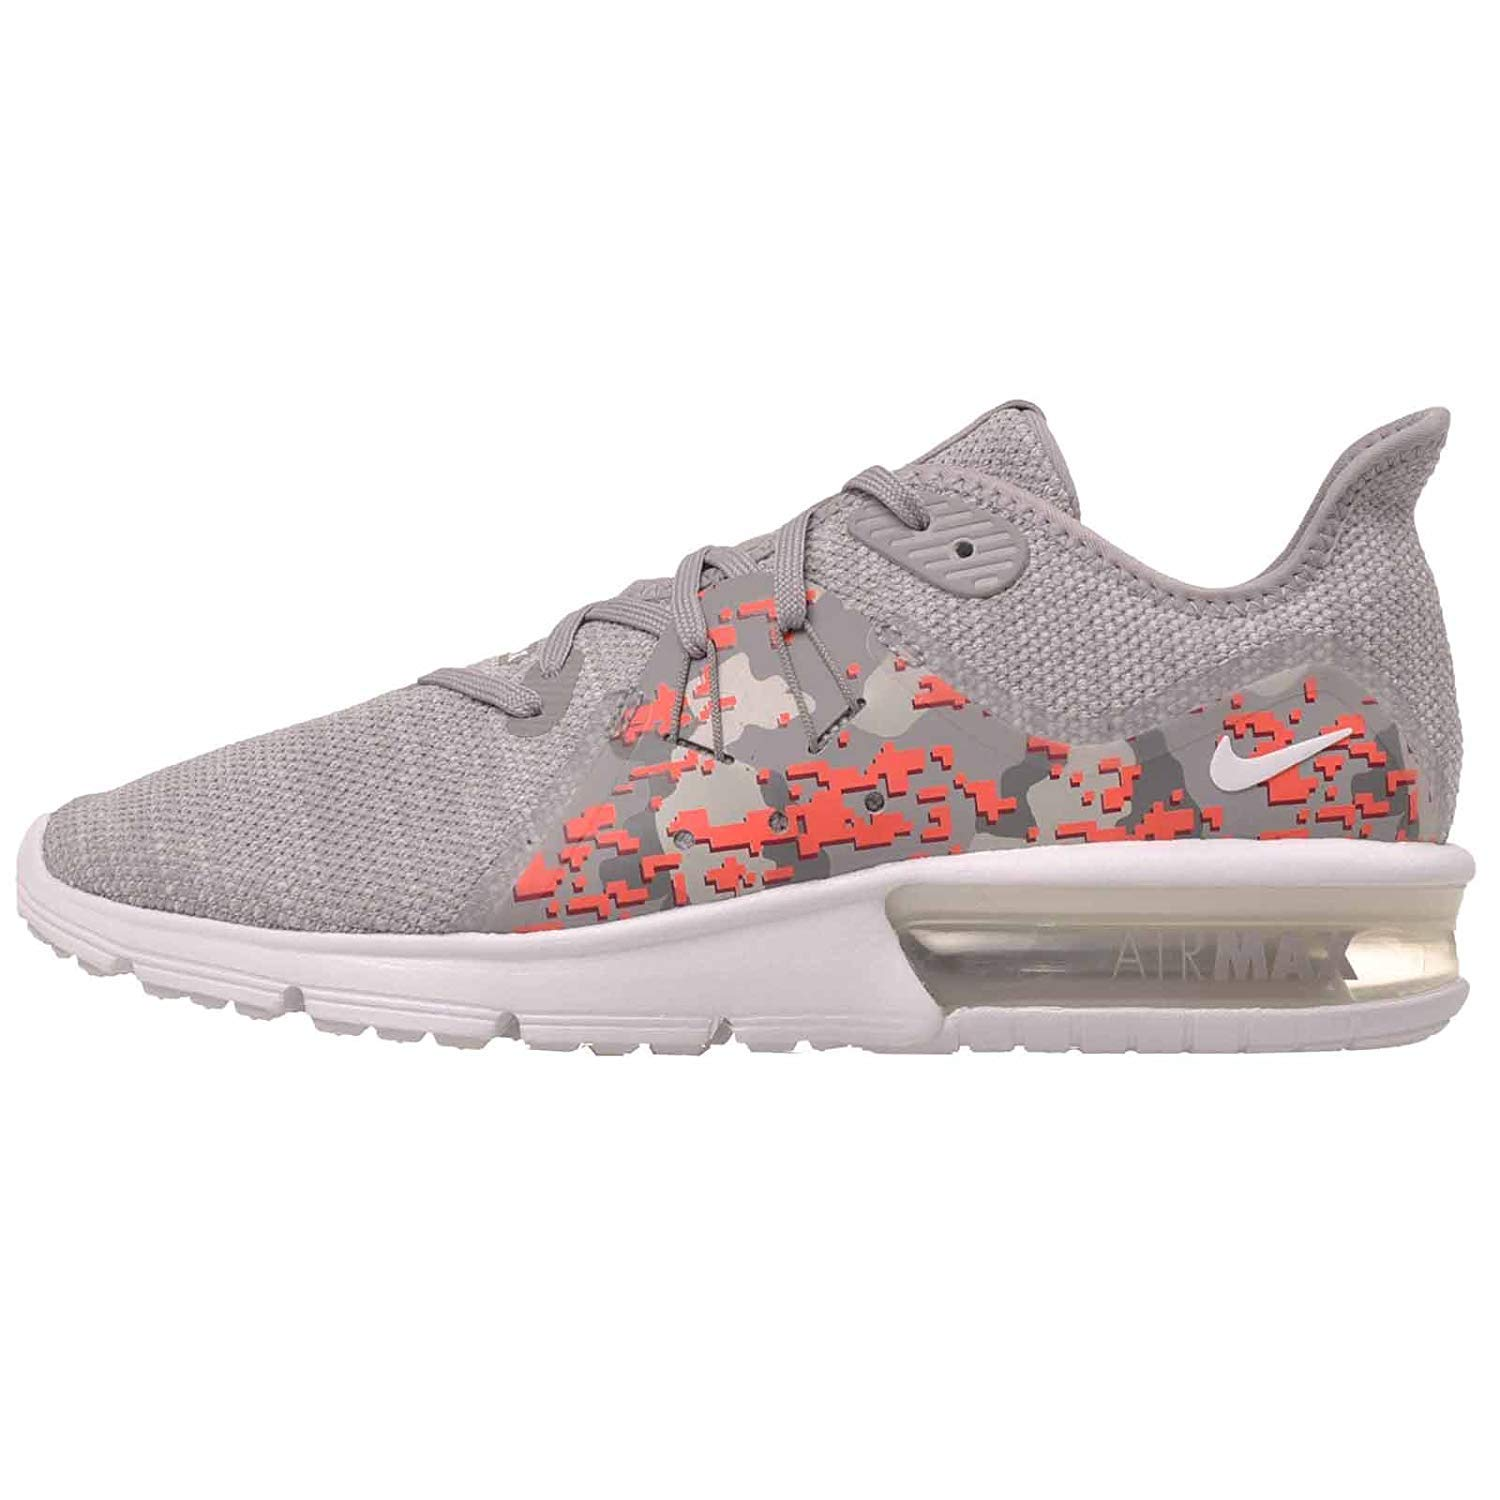 new product 580d4 a3643 Galleon - NIKE Women s Air Max Sequent 3 C Running Shoes-White Vast Grey-10